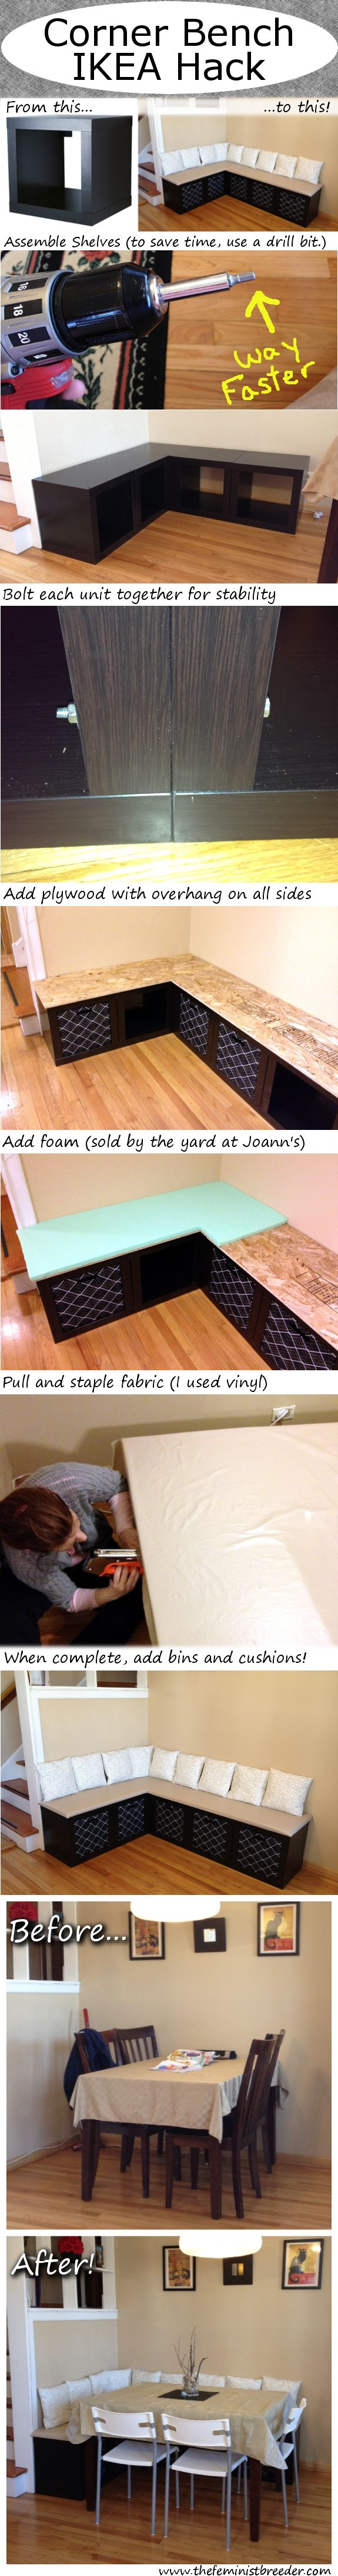 A corner bench with storage made from some IKEA wall shelves and a little upholstering. All done in less than one day.